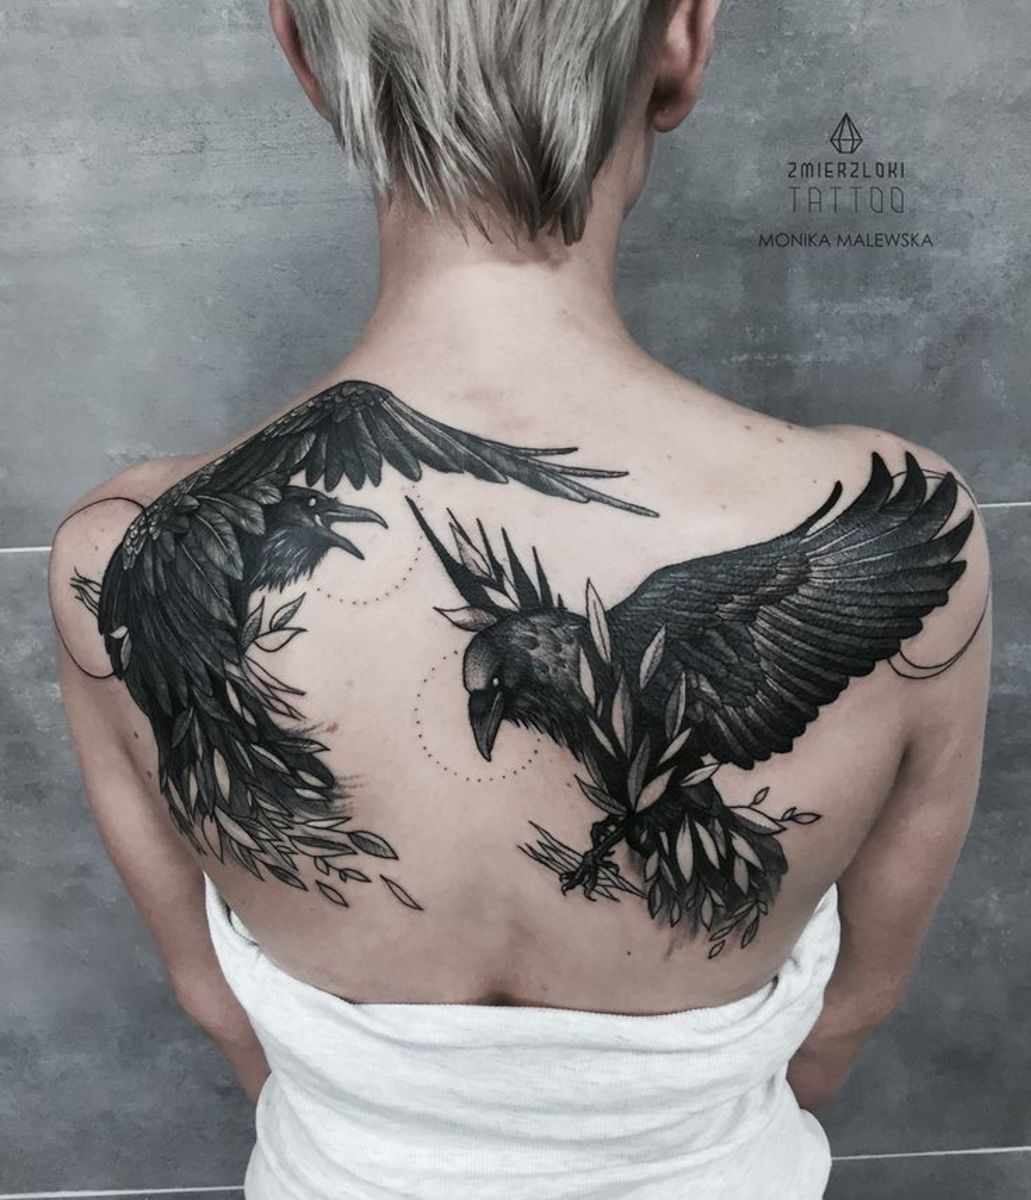 Image Credit: Raven Tattoo by Monika Malewska